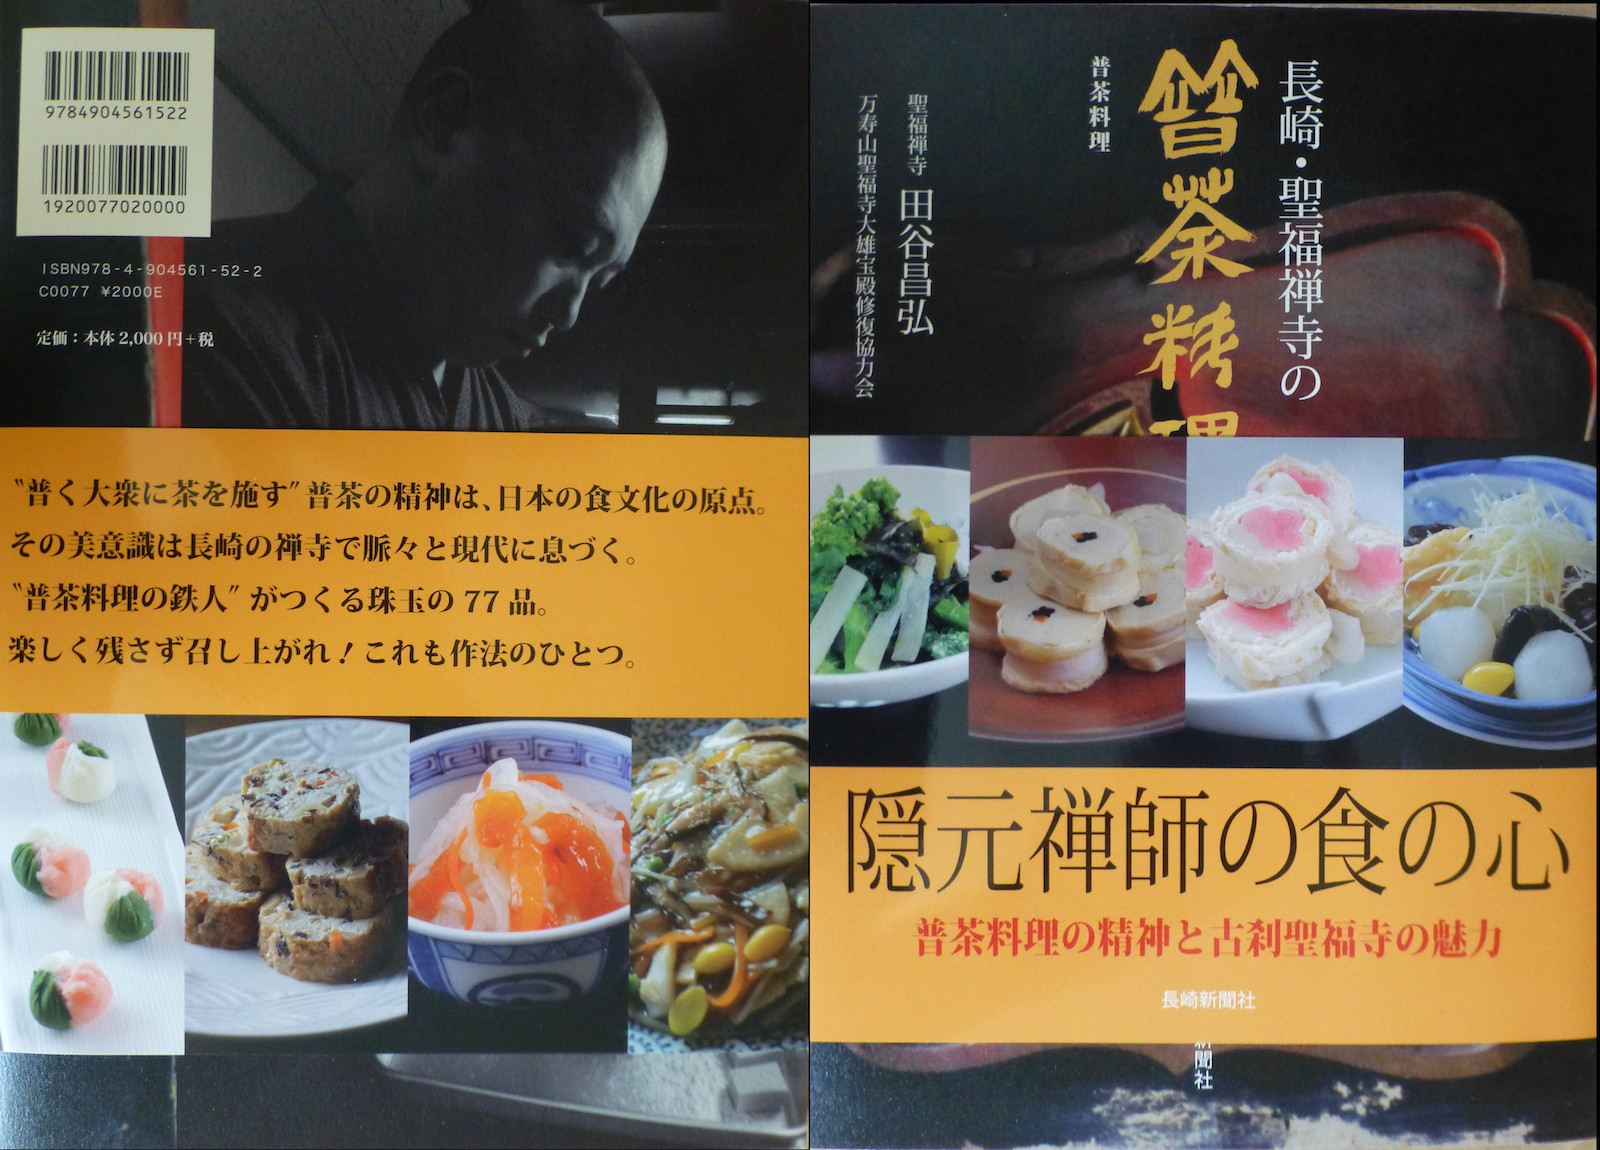 Zen temple cookbook